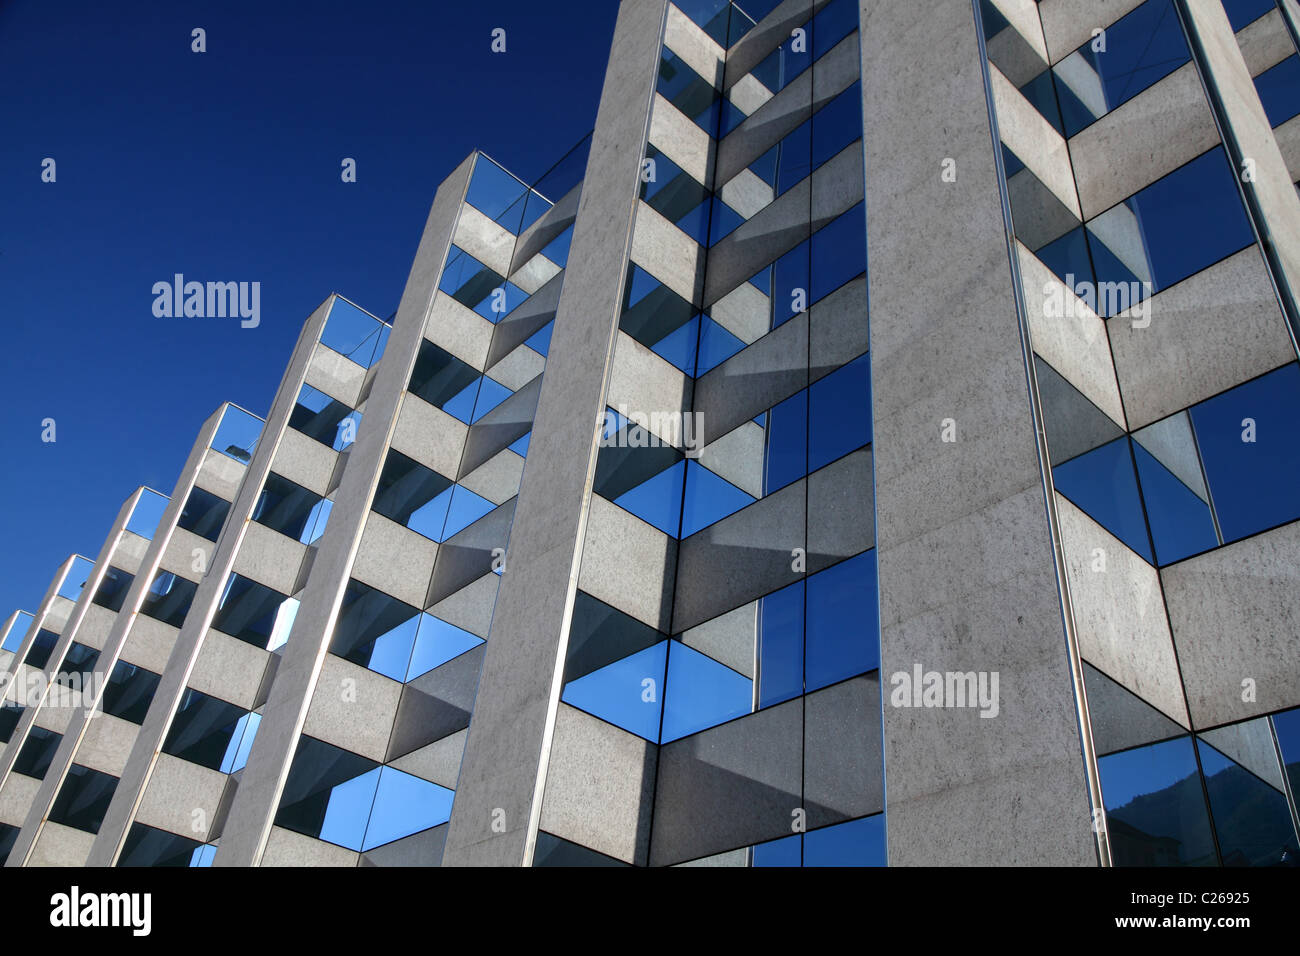 modern symmetrical office building facade with reflecting windows in front of a blue sky - Stock Image